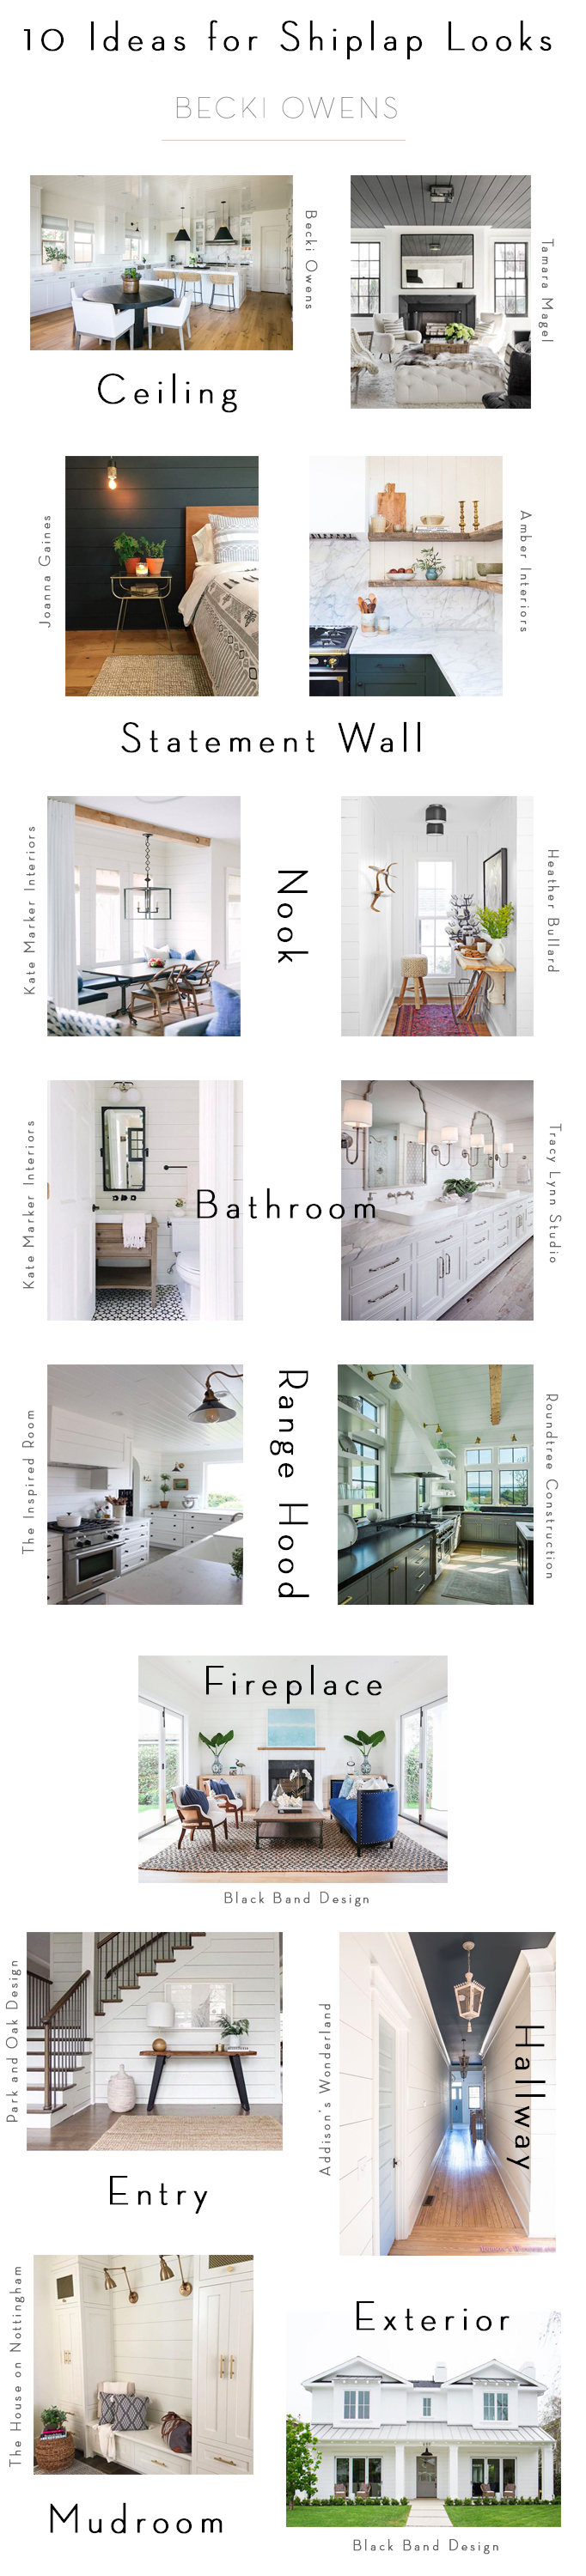 10-ideas-for-the-shiplap-look